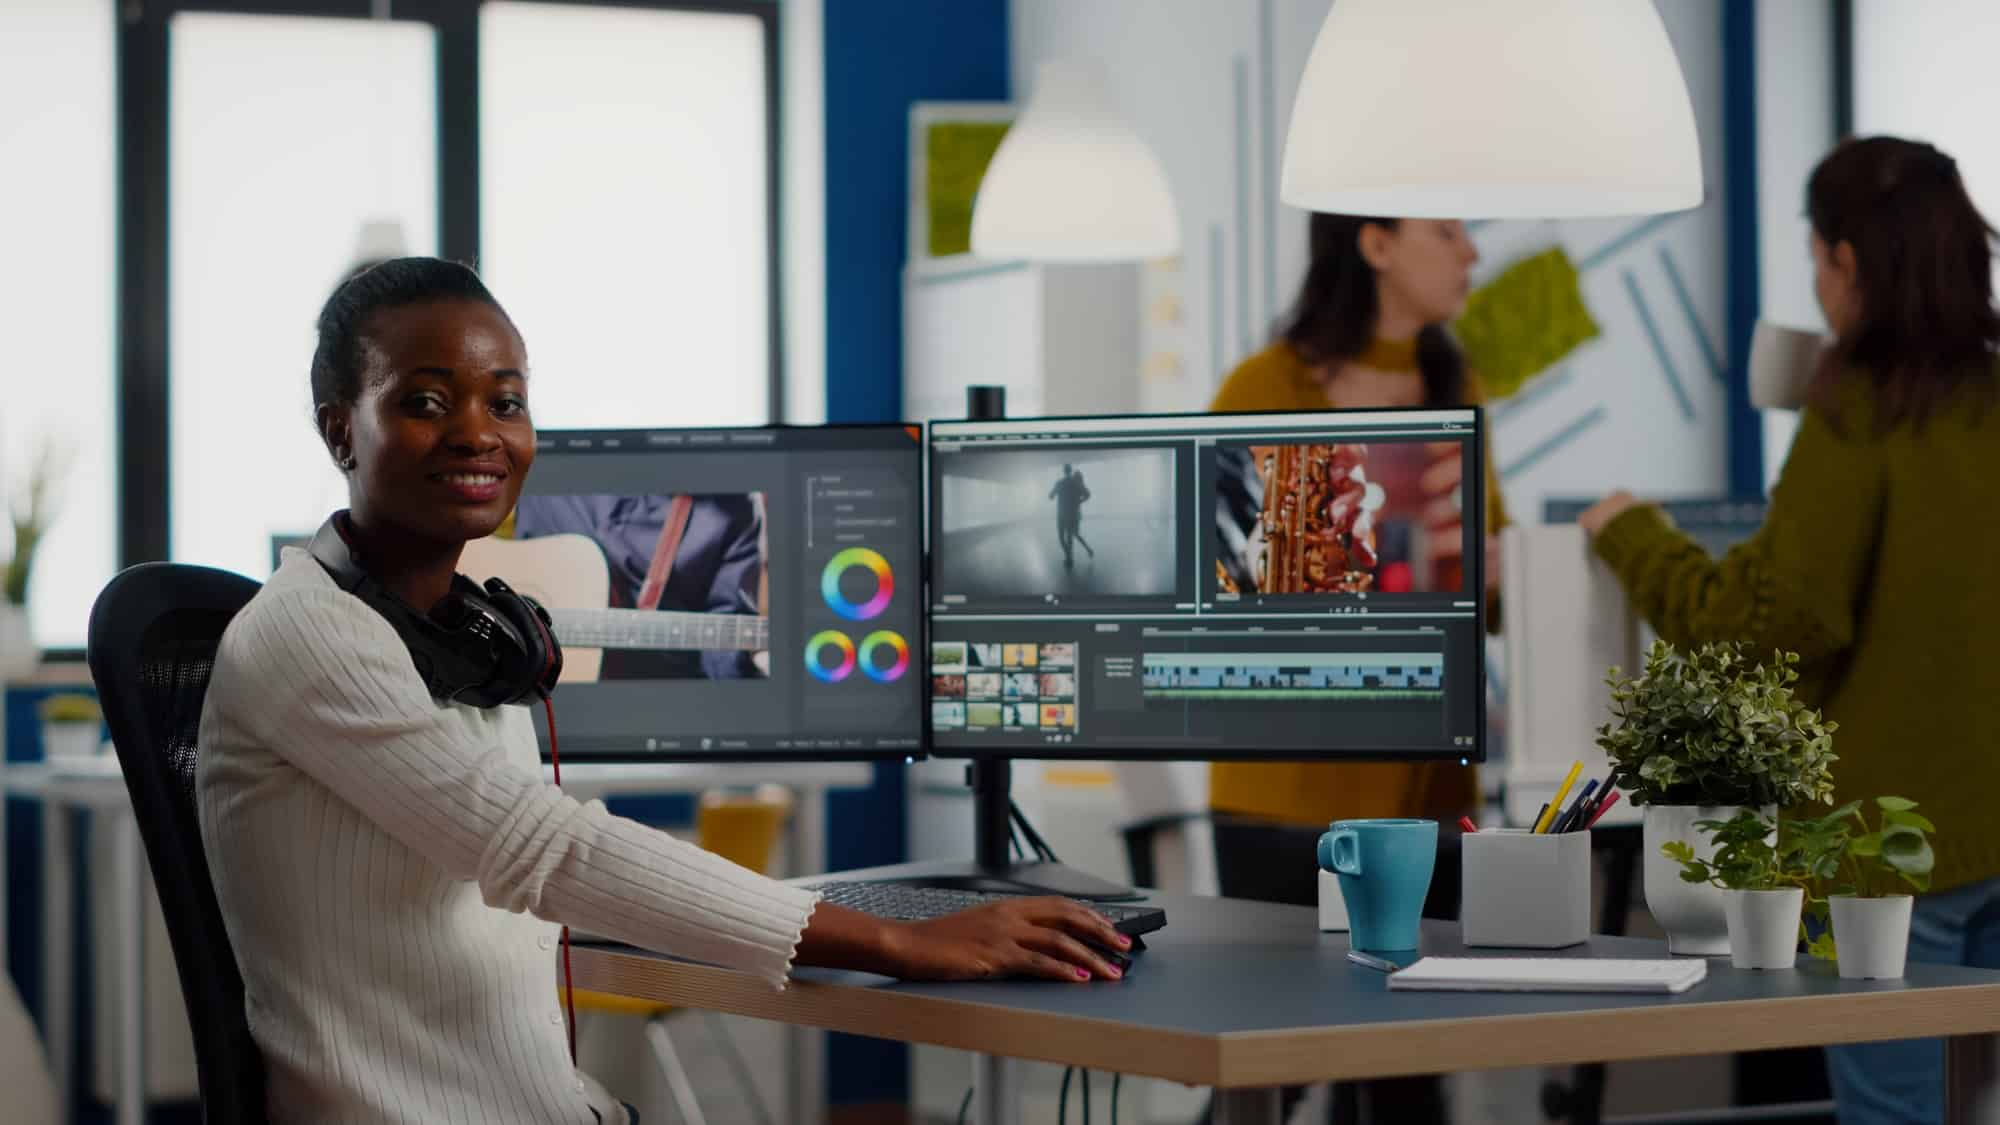 African video editor looking at camera smiling editing video project